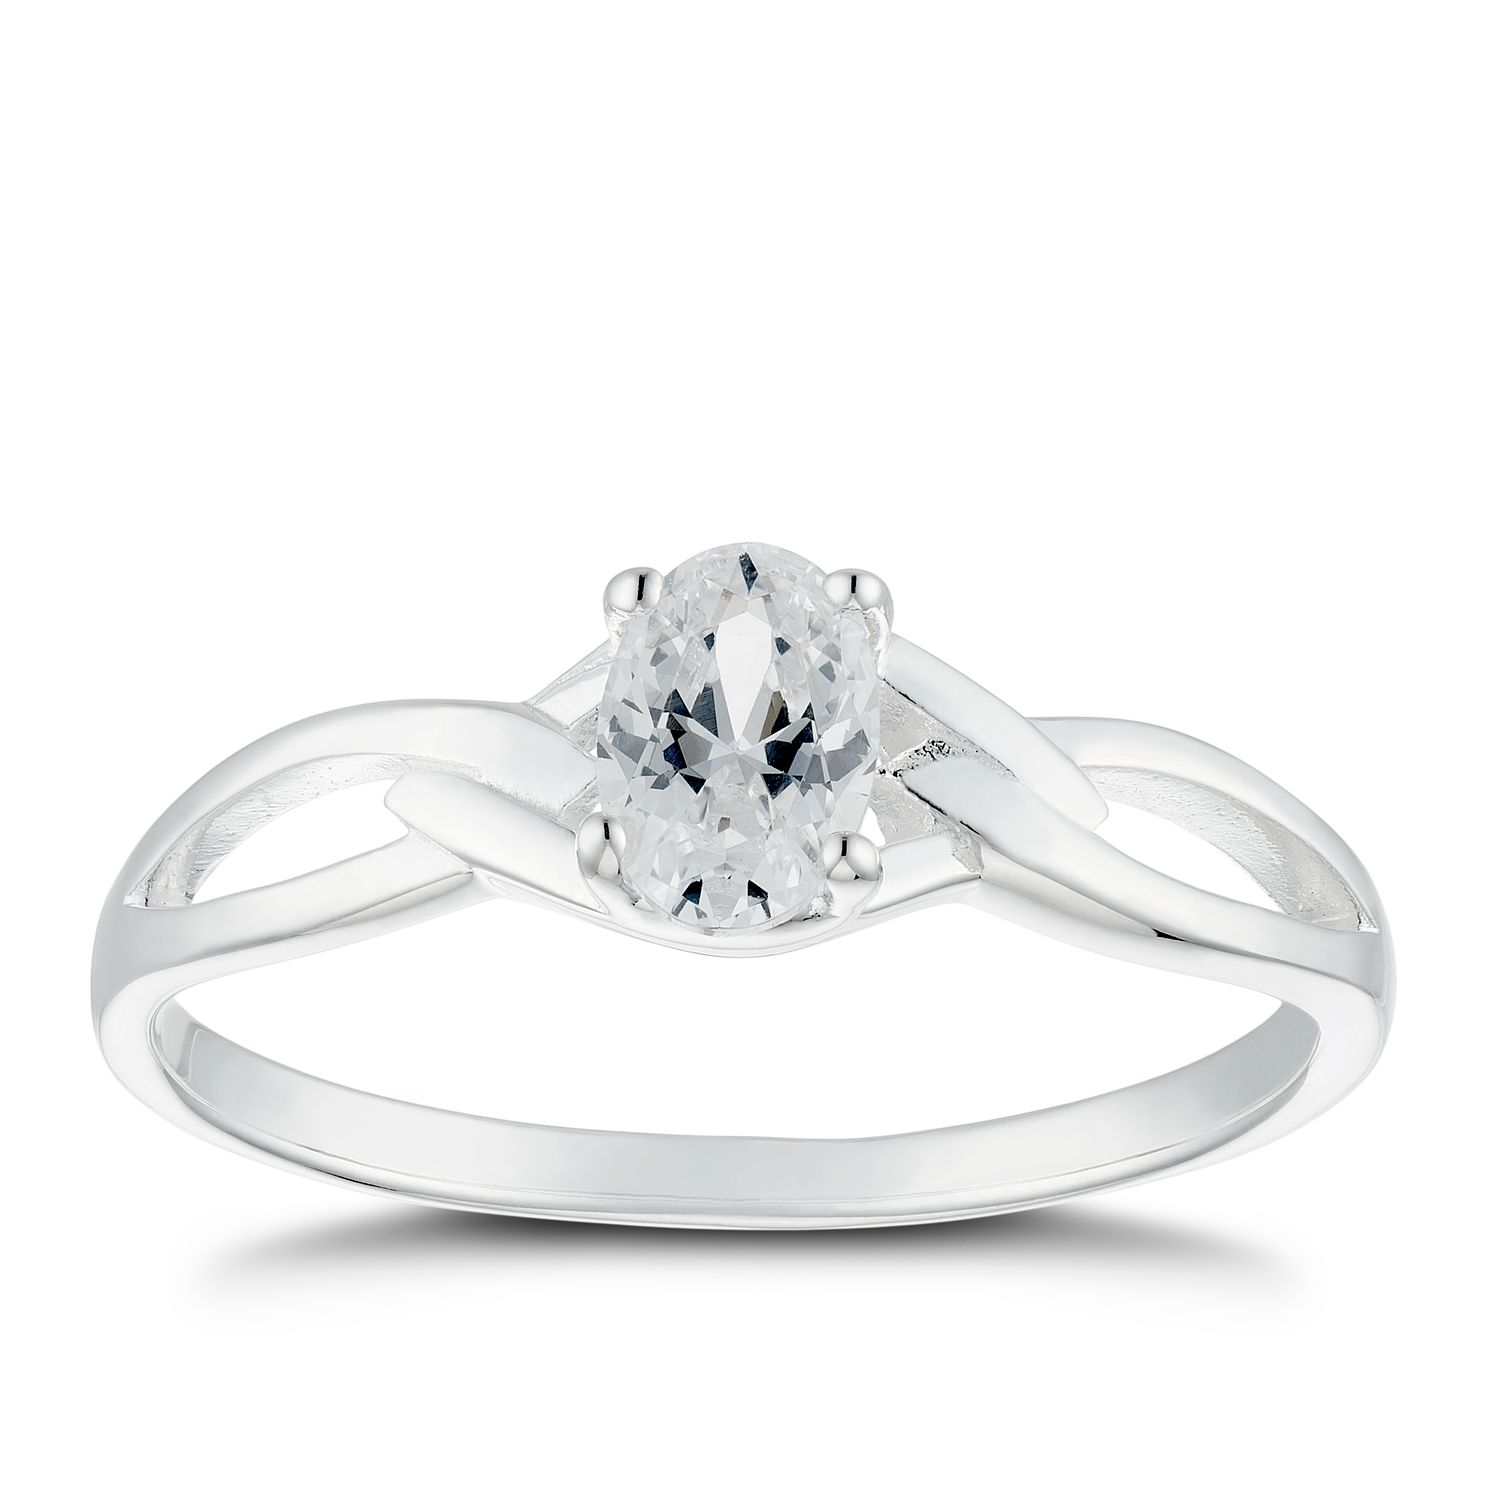 Silver Cubic Zirconia Solitaire Wave Ring - Size P - Product number 4843002